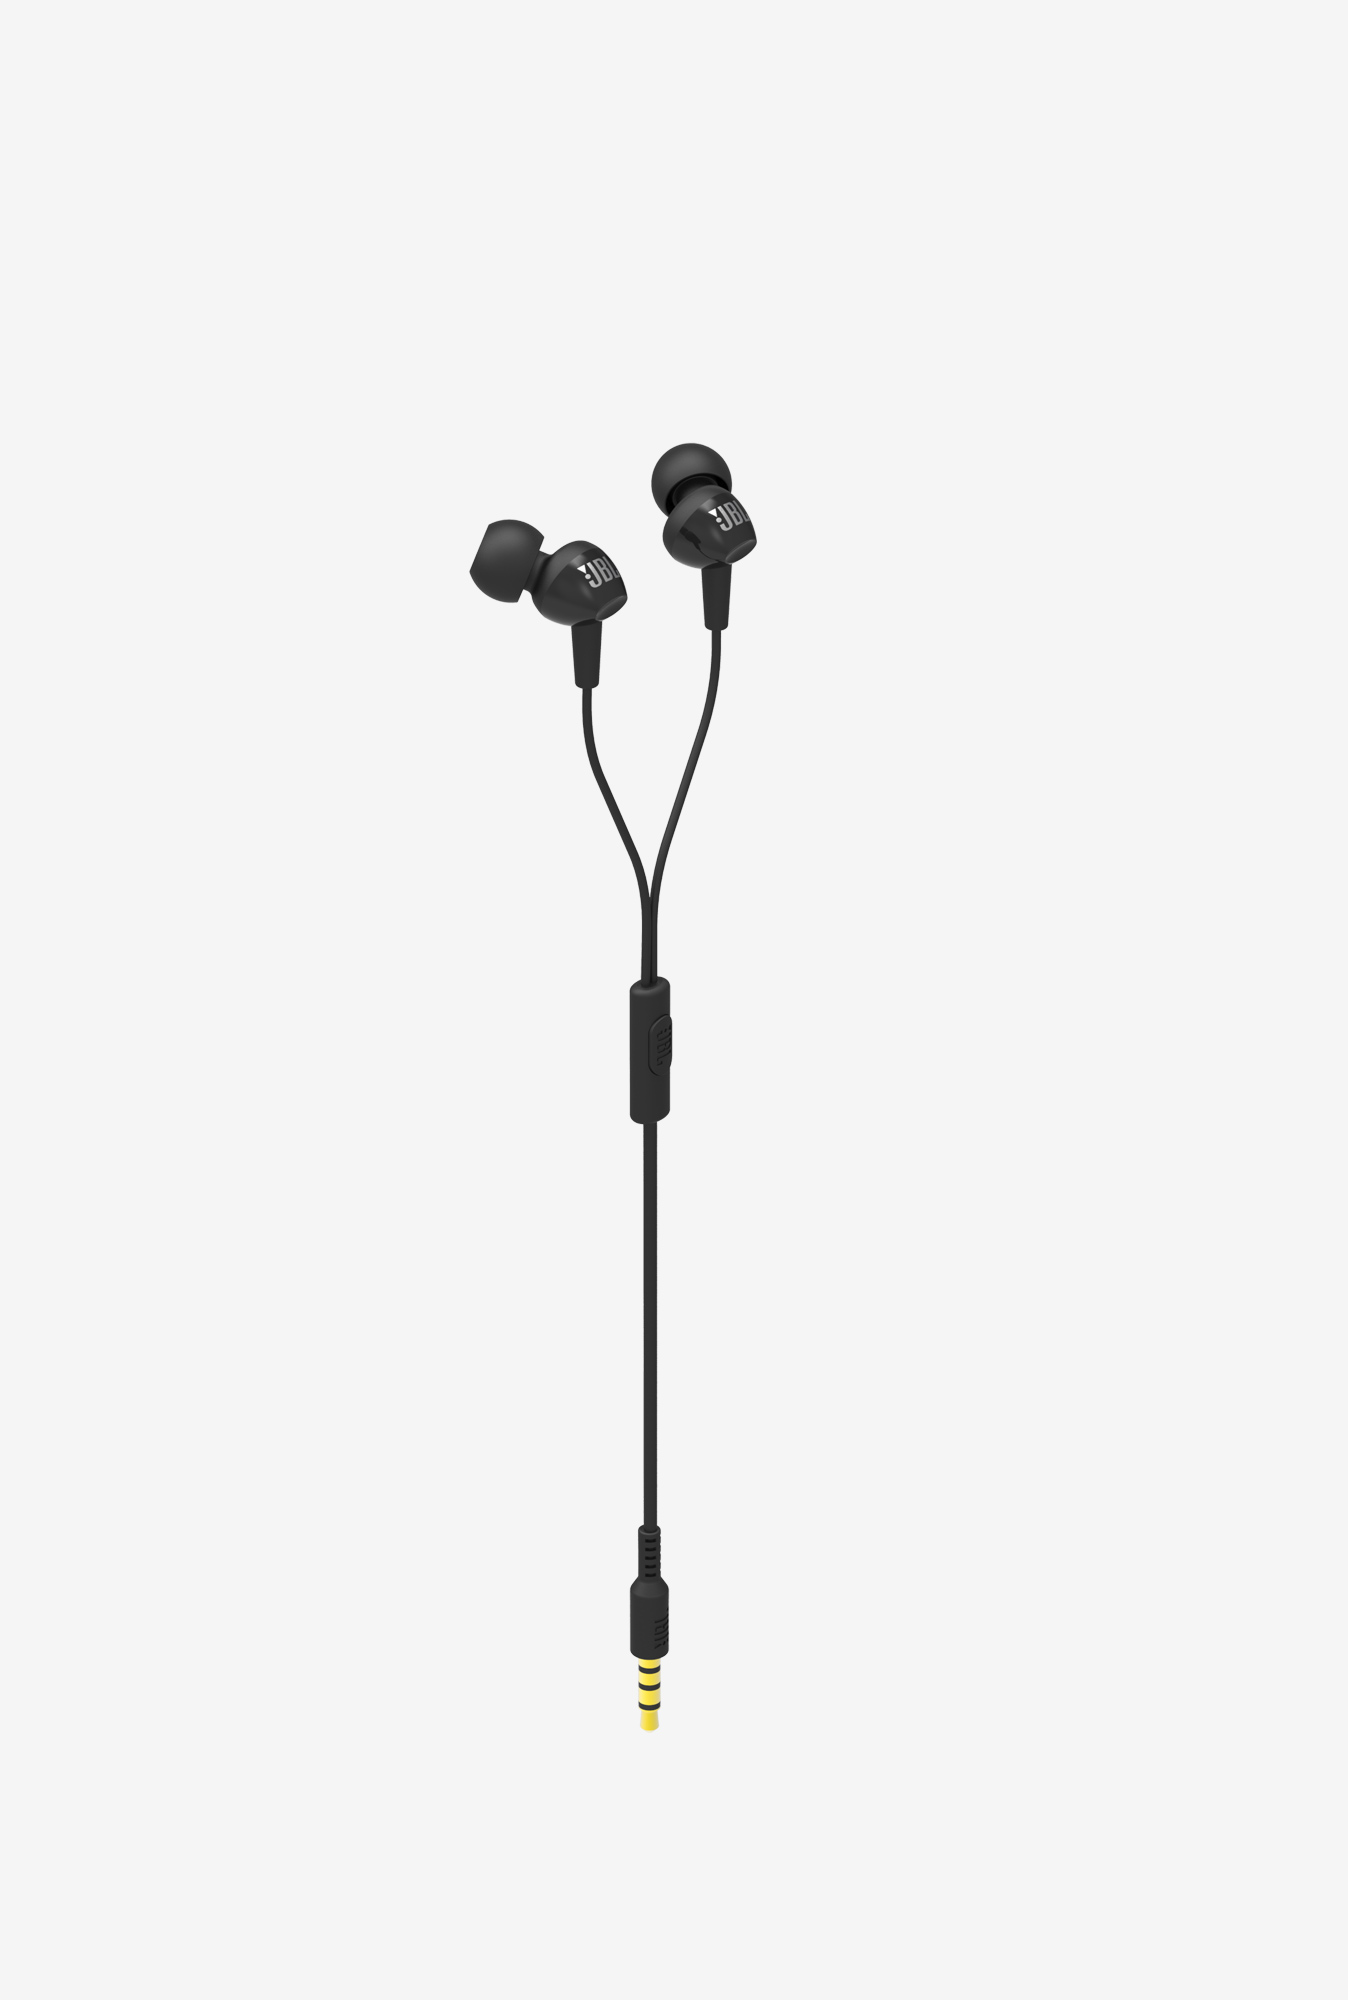 2cdefc2c640 JBL C100SI In Ear Headphone at Rs. 599/- Lowest Price Online at  FreeKaaMaal.com